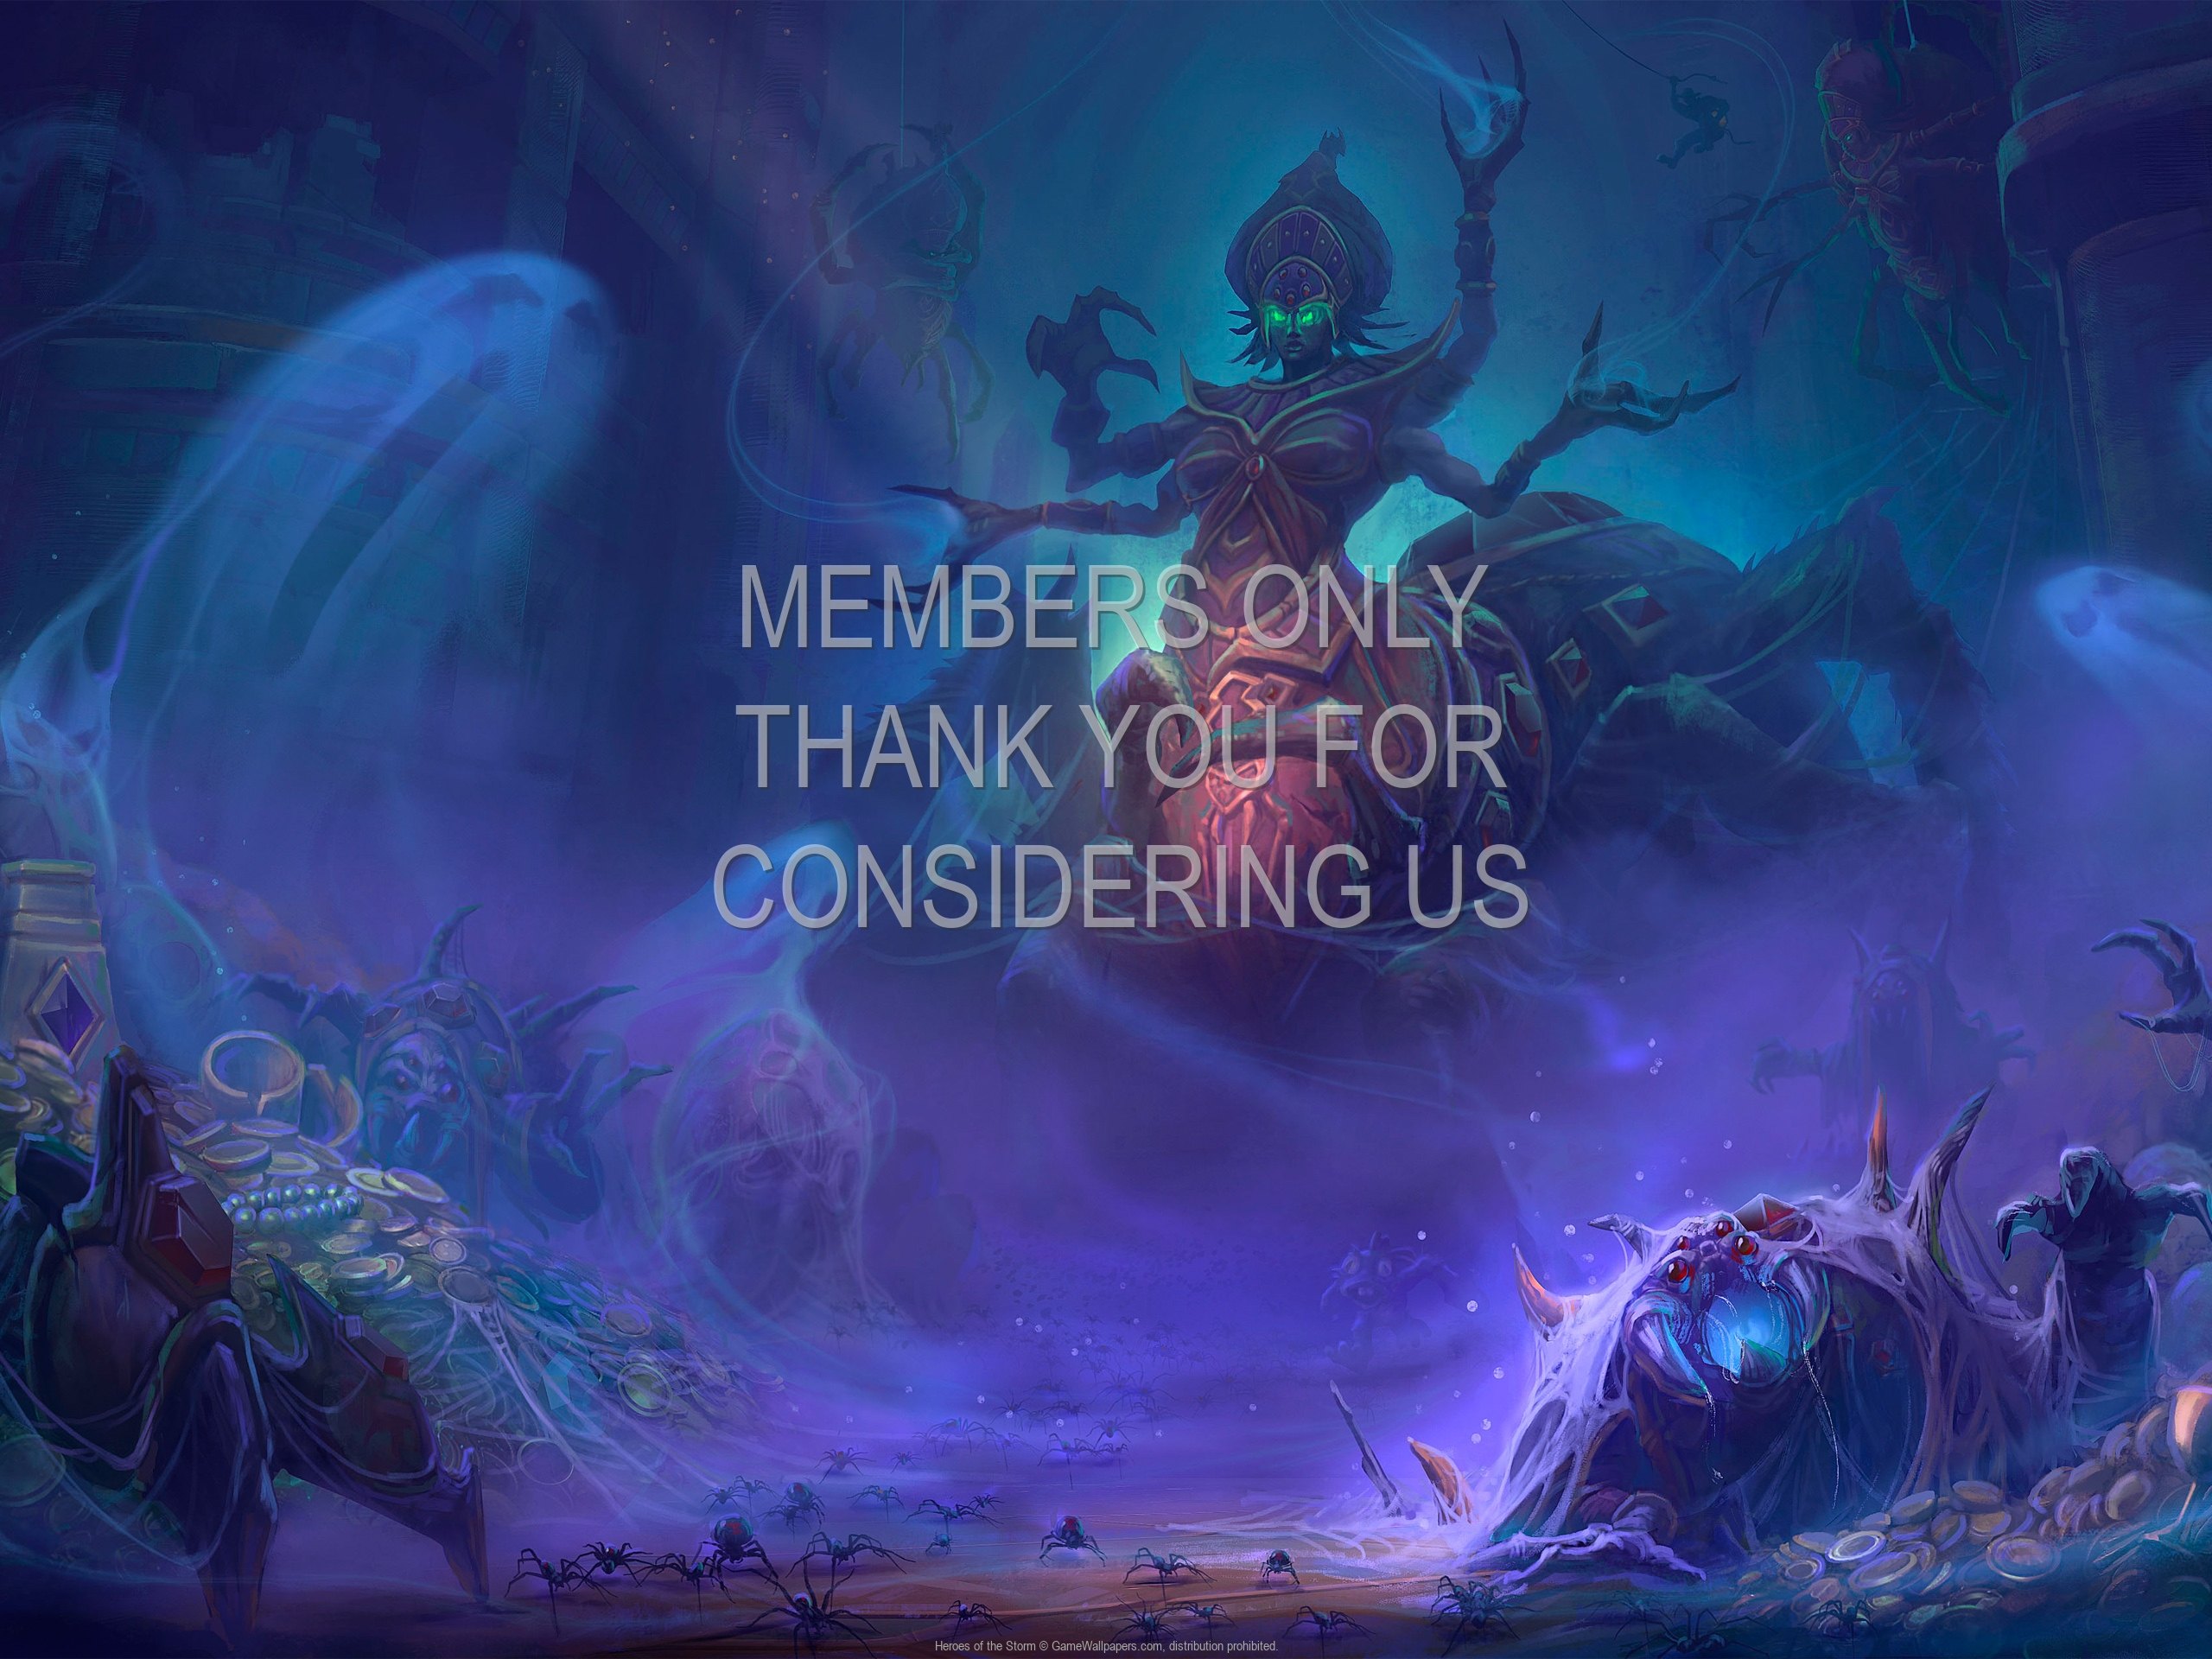 Heroes of the Storm 1920x1080 Mobiele achtergrond 02